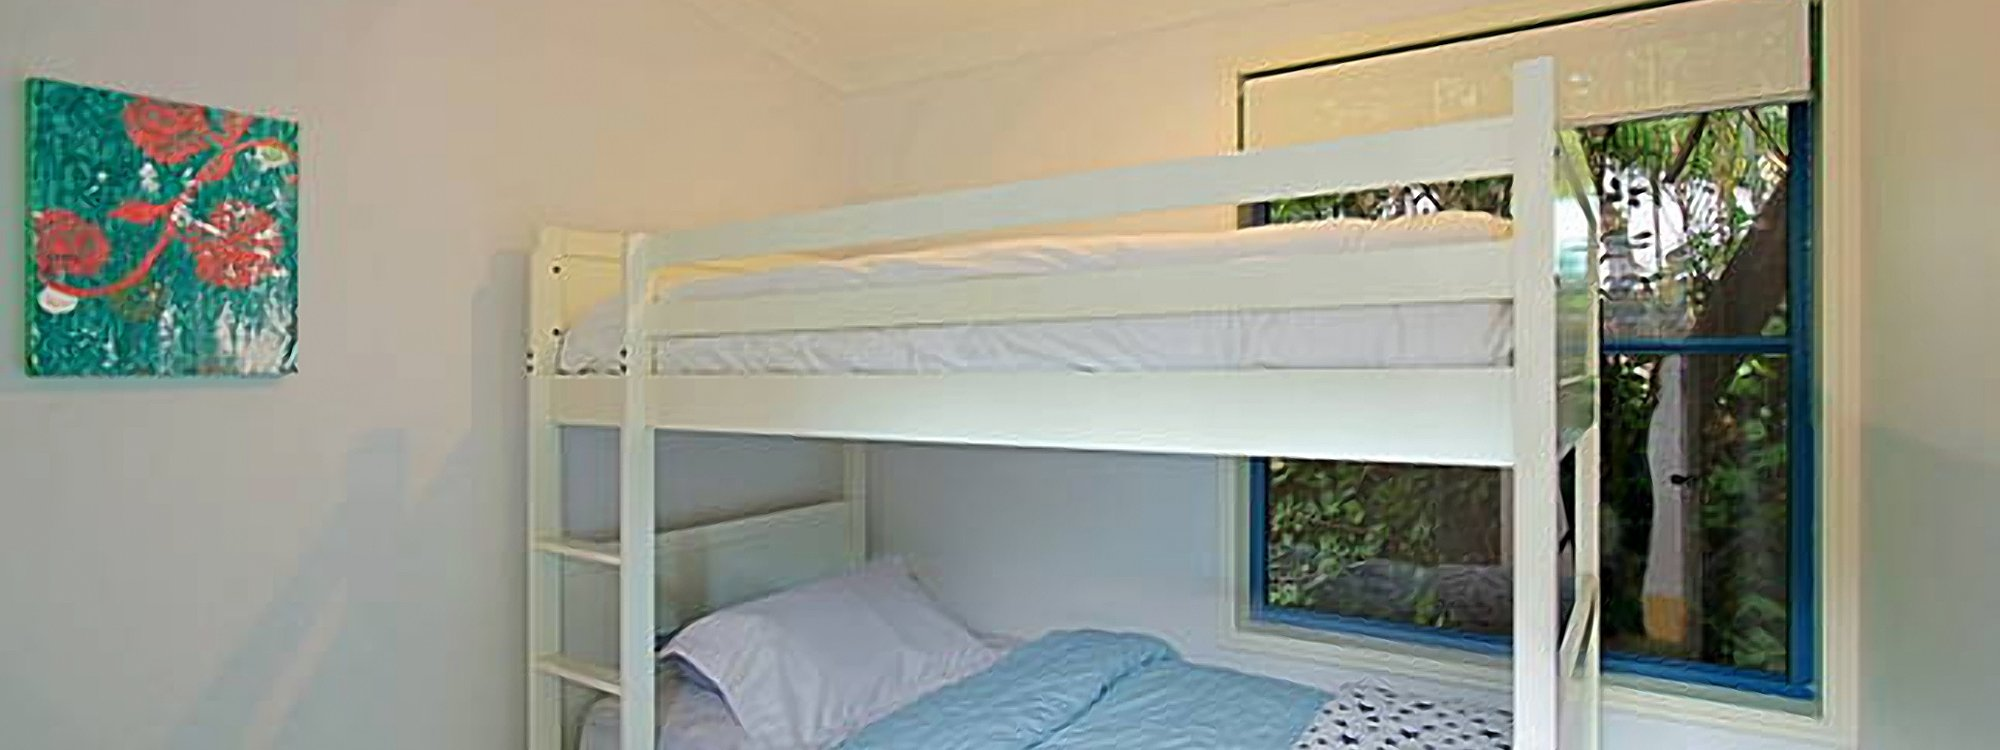 Aurora Byron Bay - Bunk room